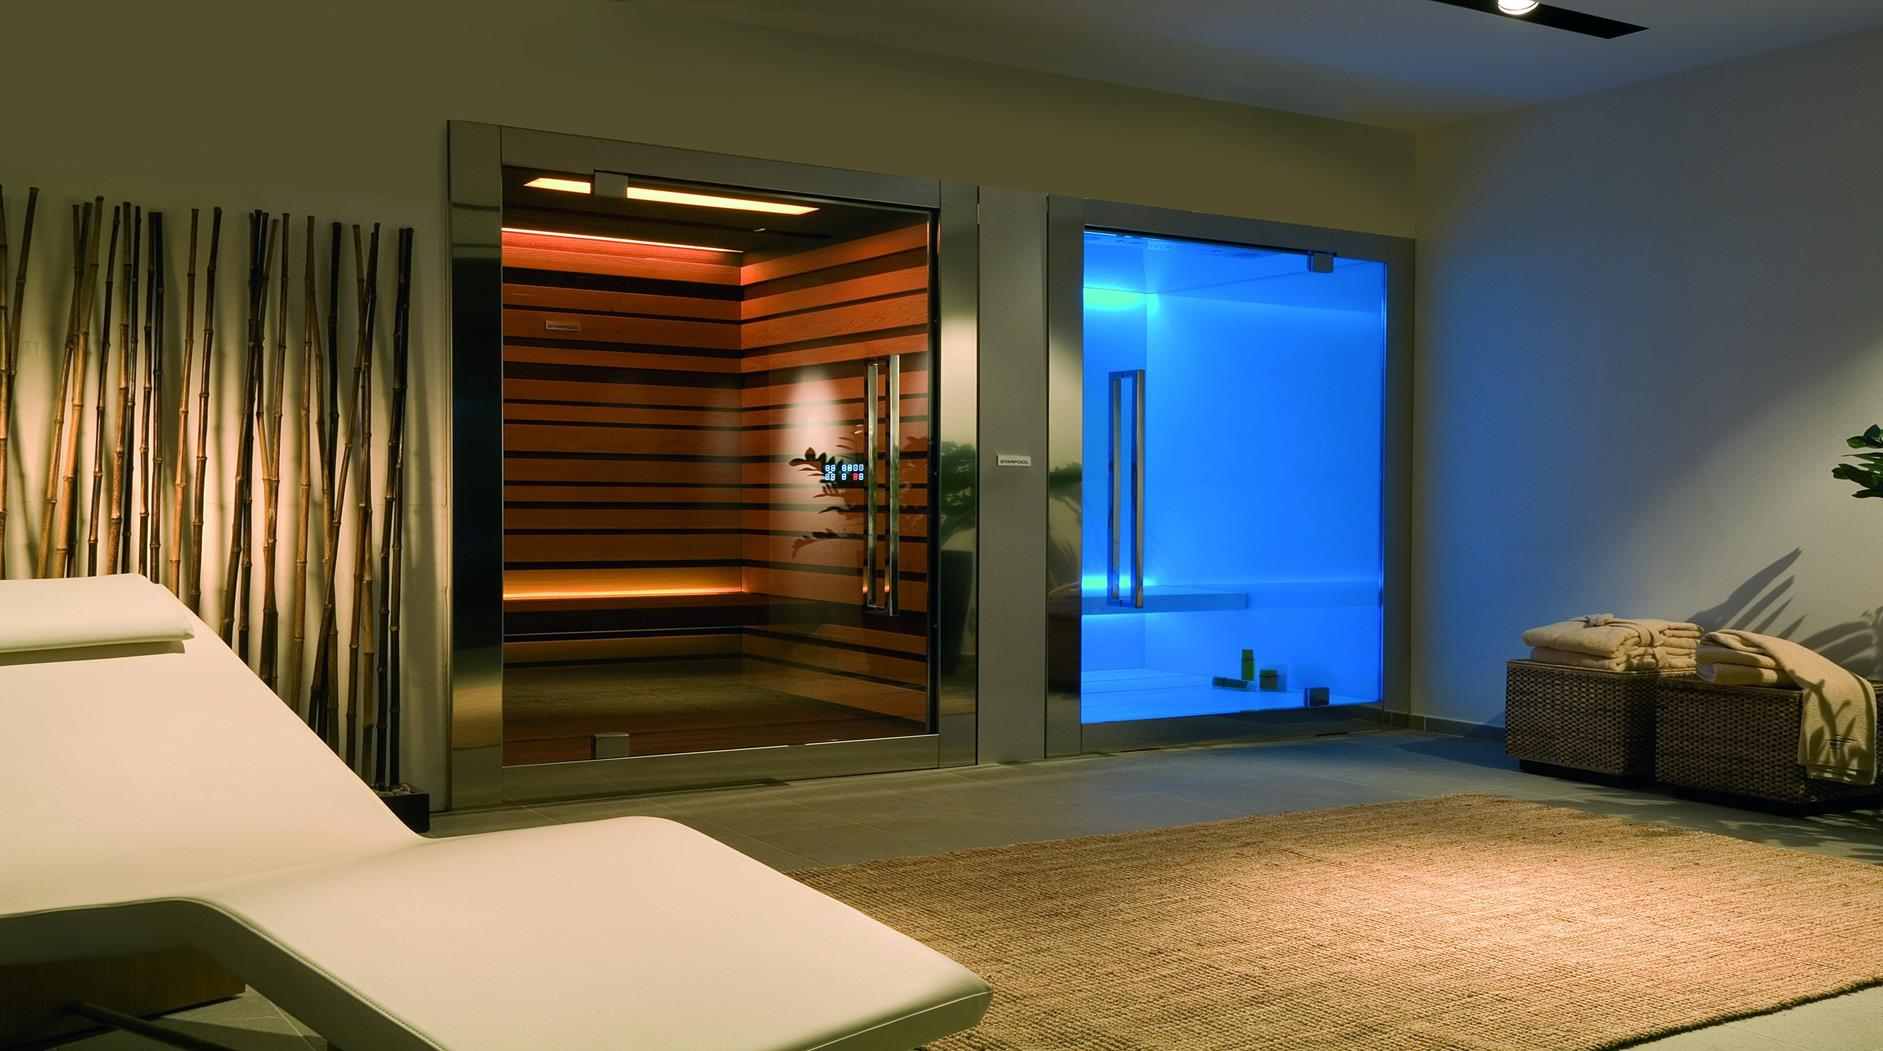 Steam room and saunas